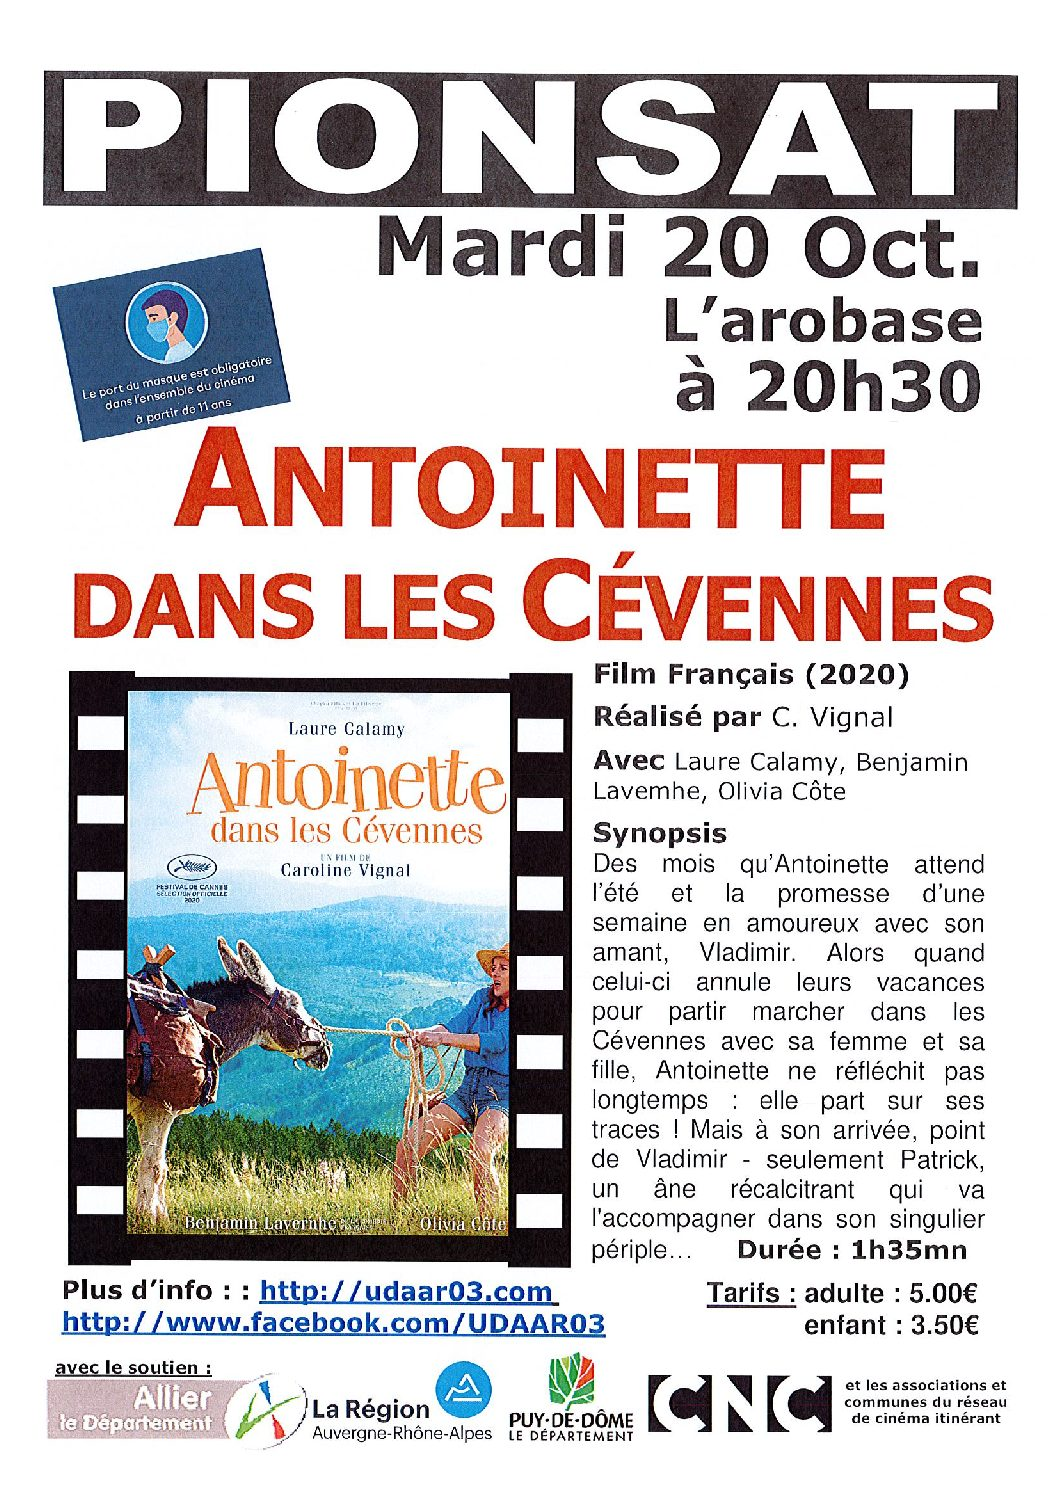 CINEMA DU 20 OCTOBRE